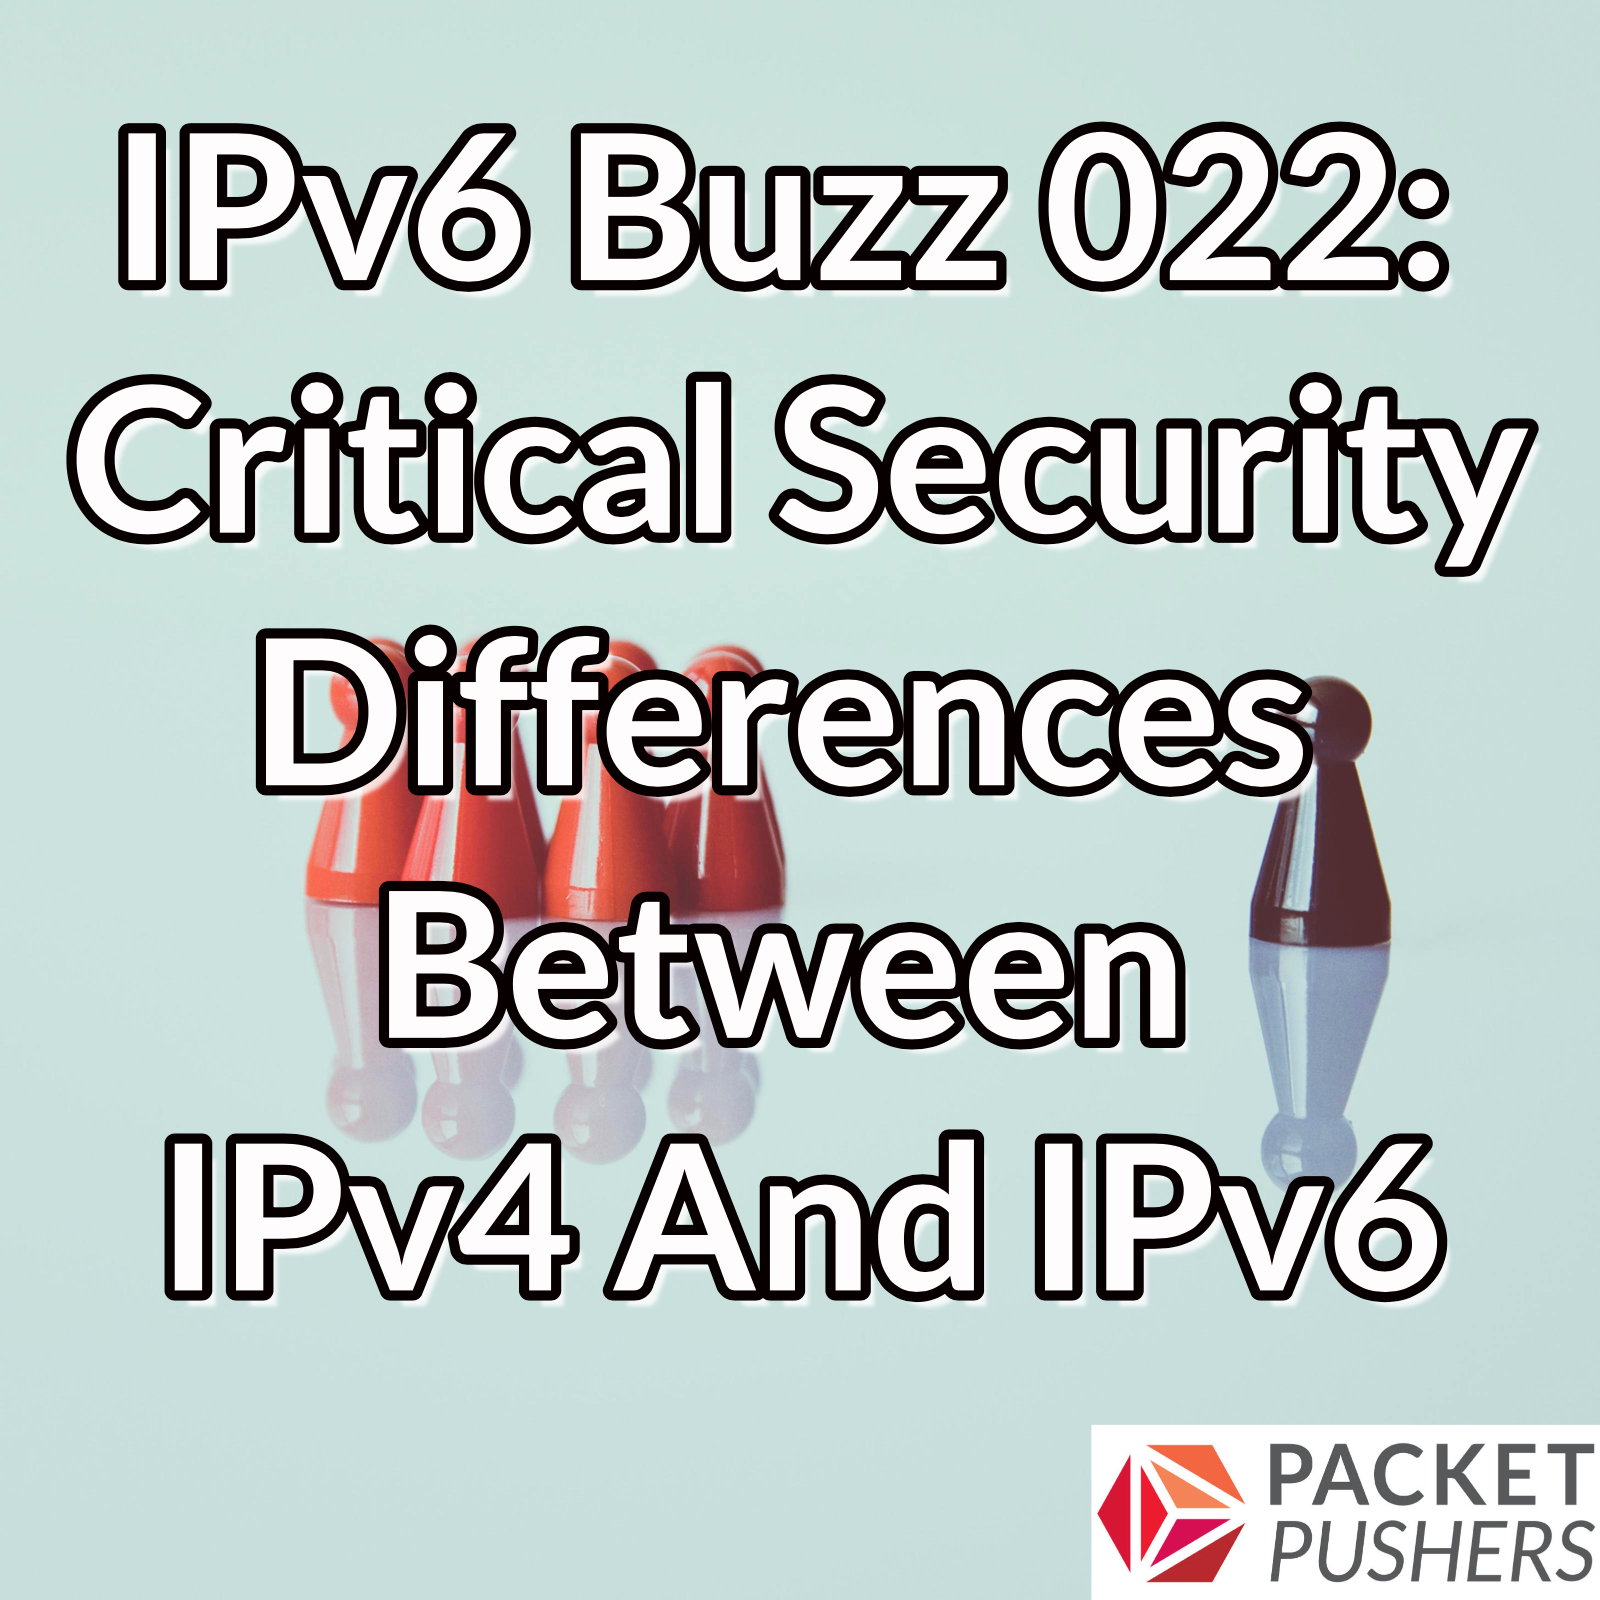 Critical Security Differences Between IPv4 And IPv6